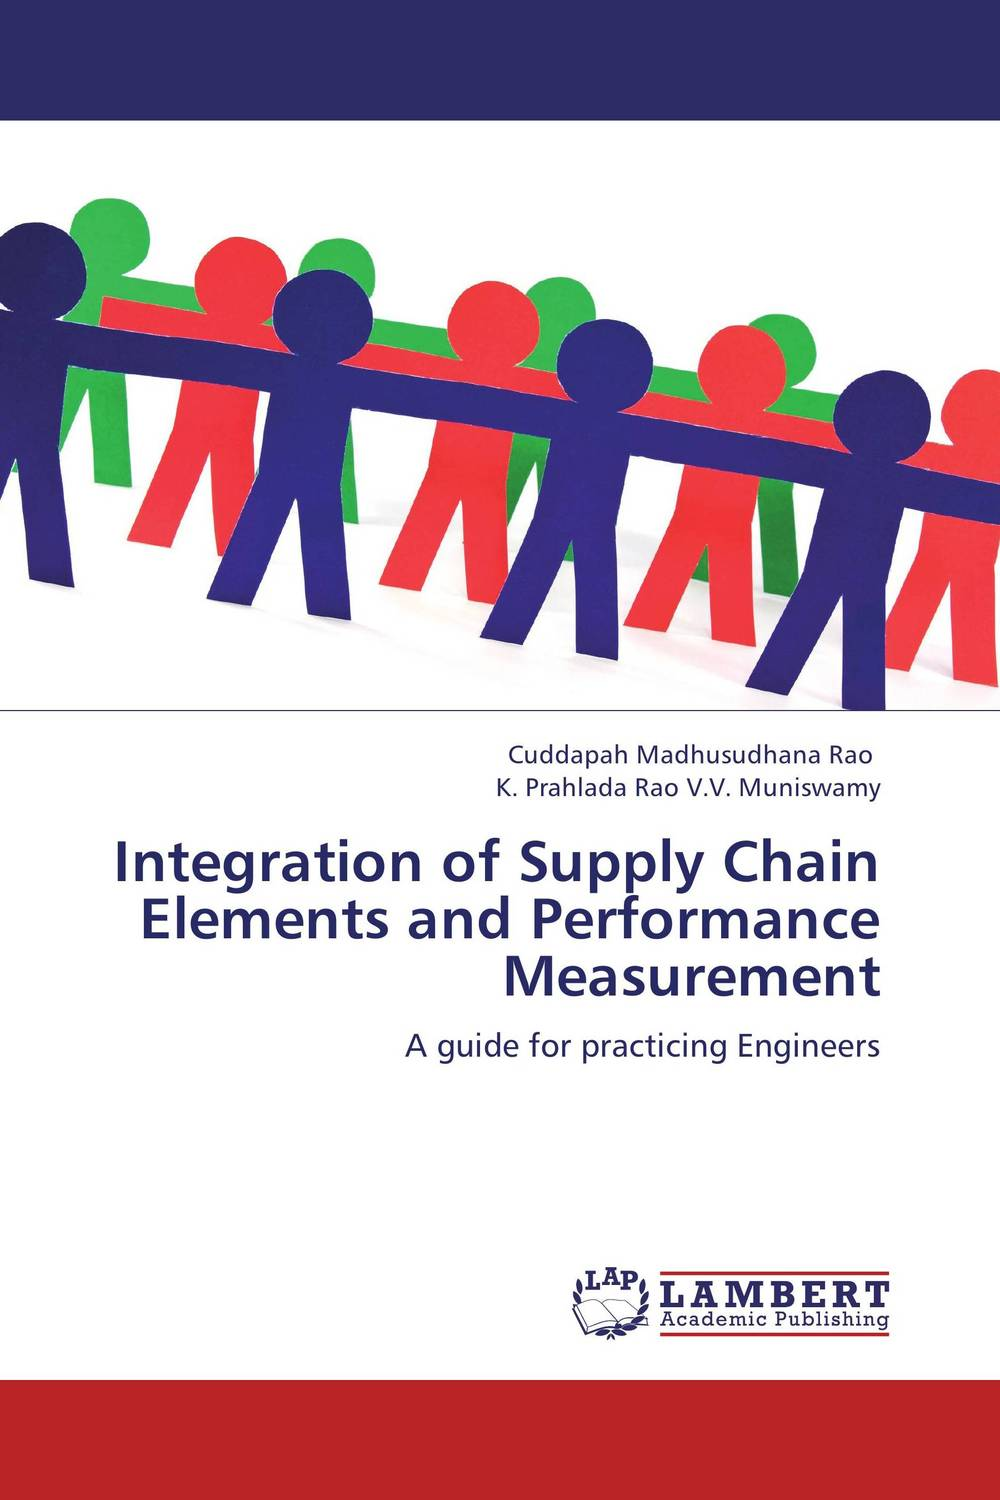 Integration of Supply Chain Elements and Performance Measurement vengadasan govindasamy sustainable supply chain management practices